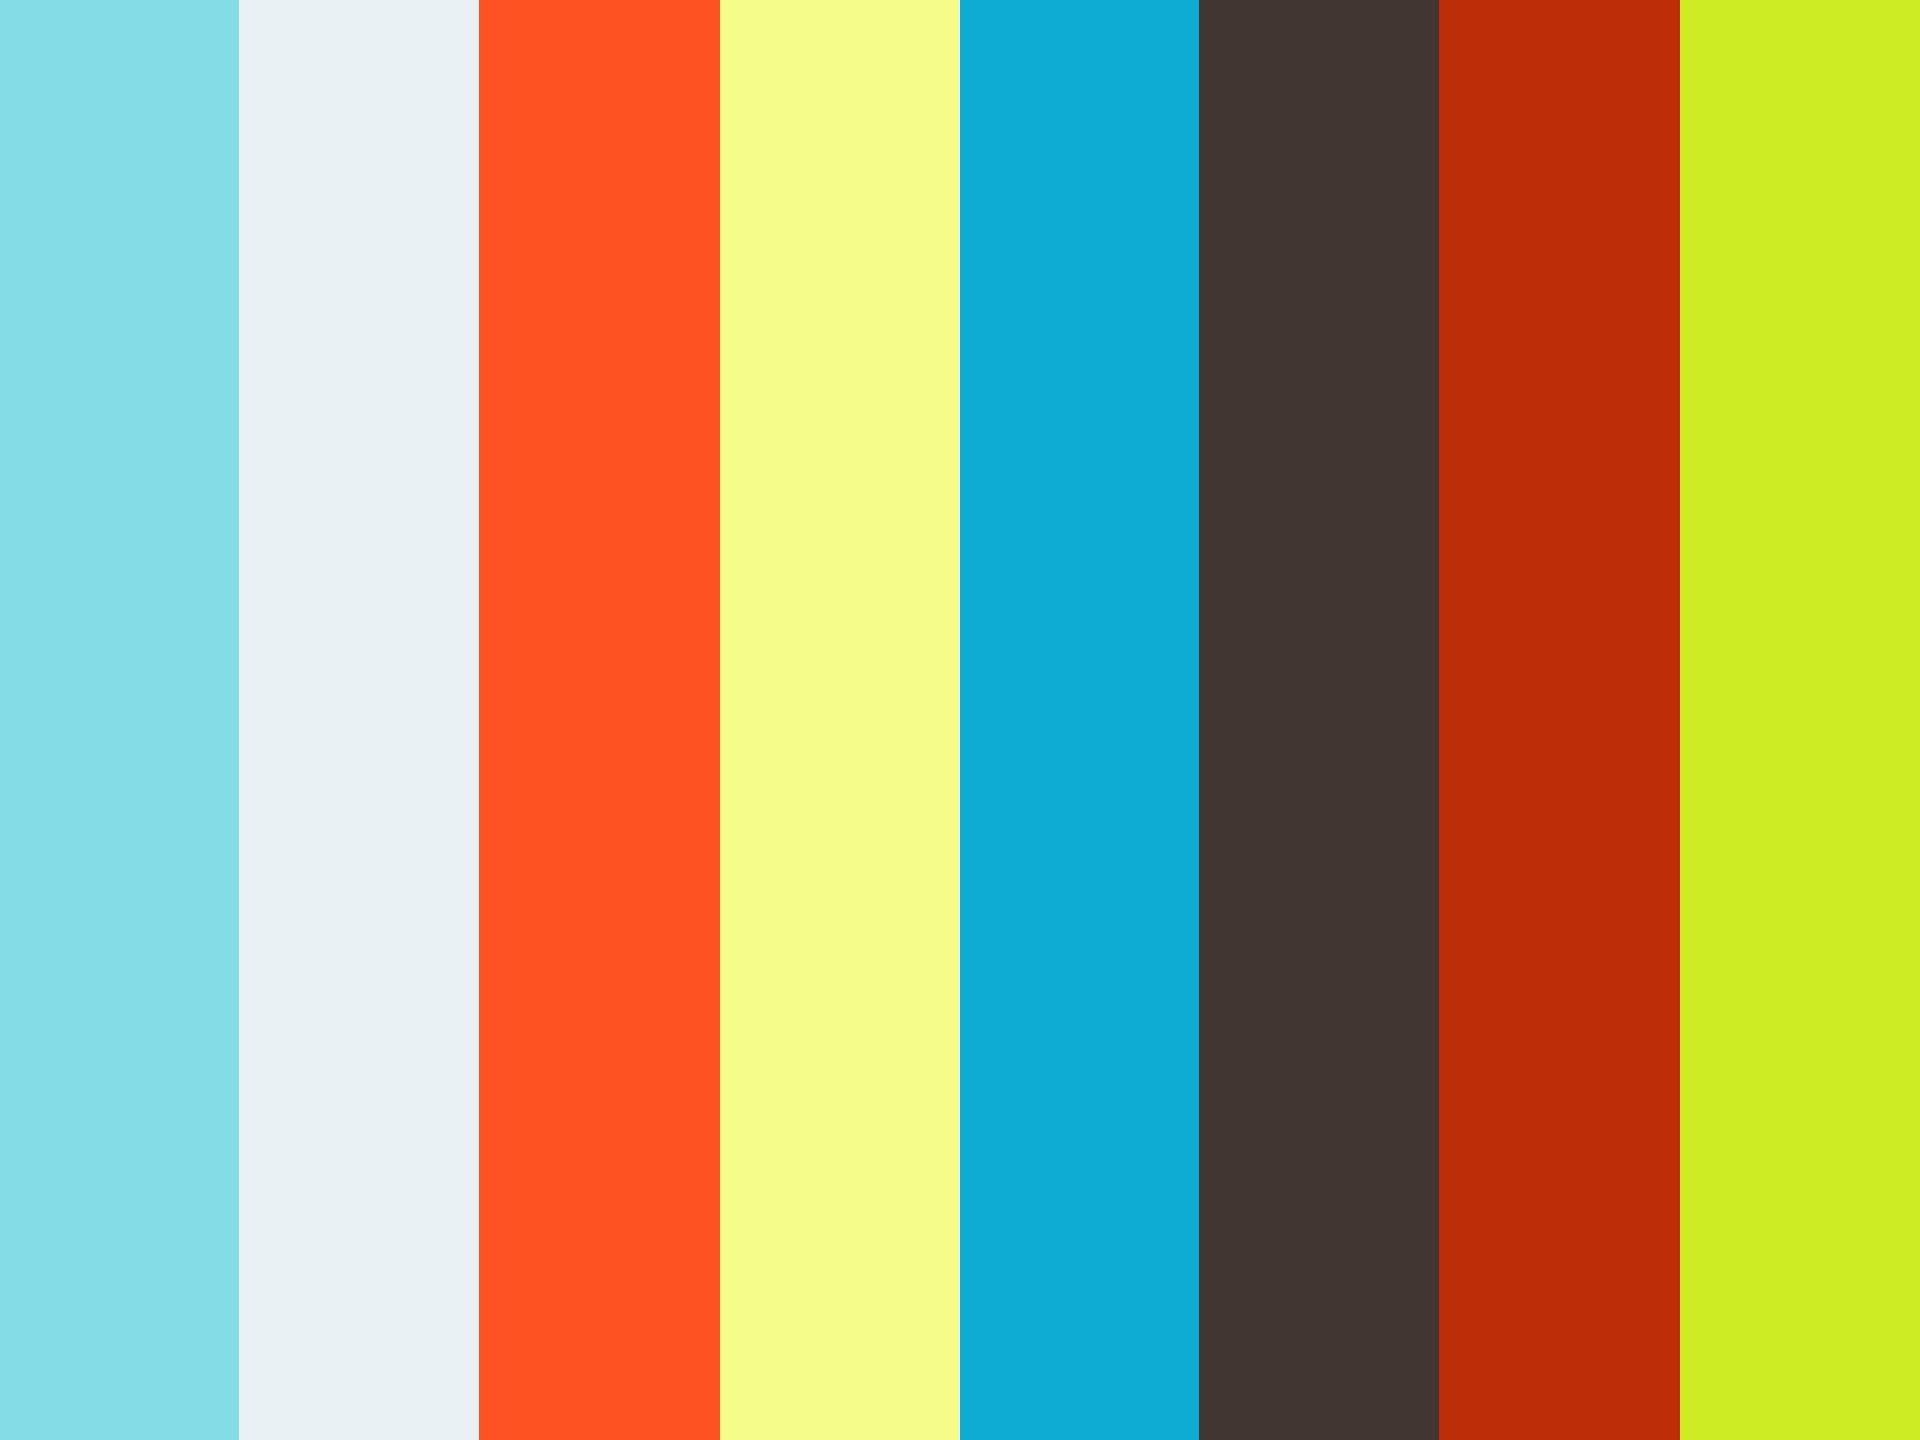 Can Pretreatment Rectal MRI Predict Response to Neoadjuvant Chemoradiation Therapy? 2011